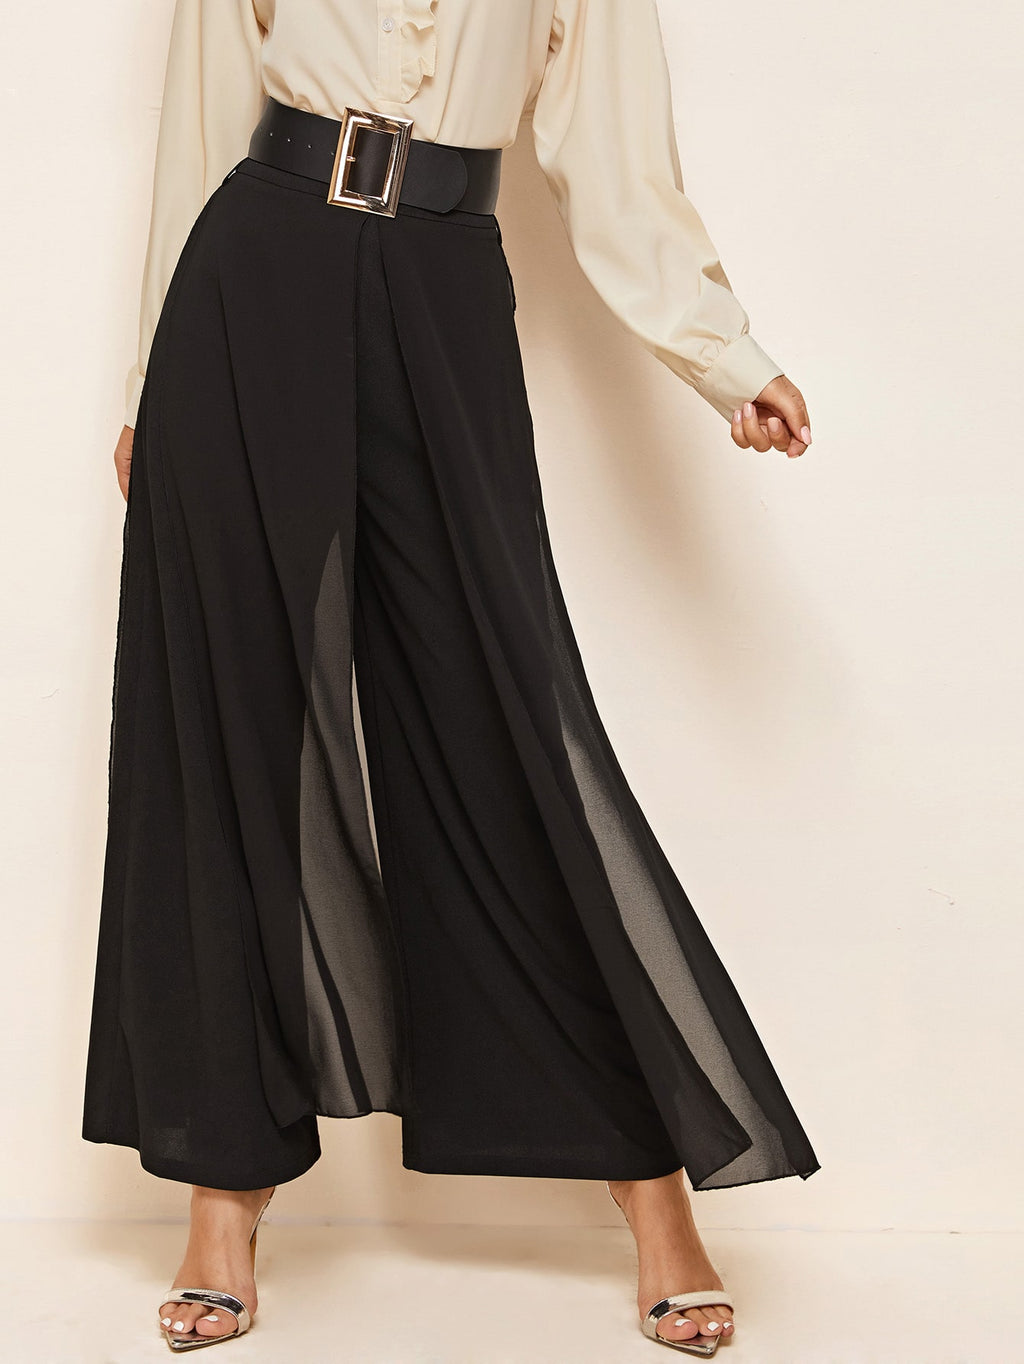 Split Skirt Overlay Buckle Belted Wide Leg Pants FD